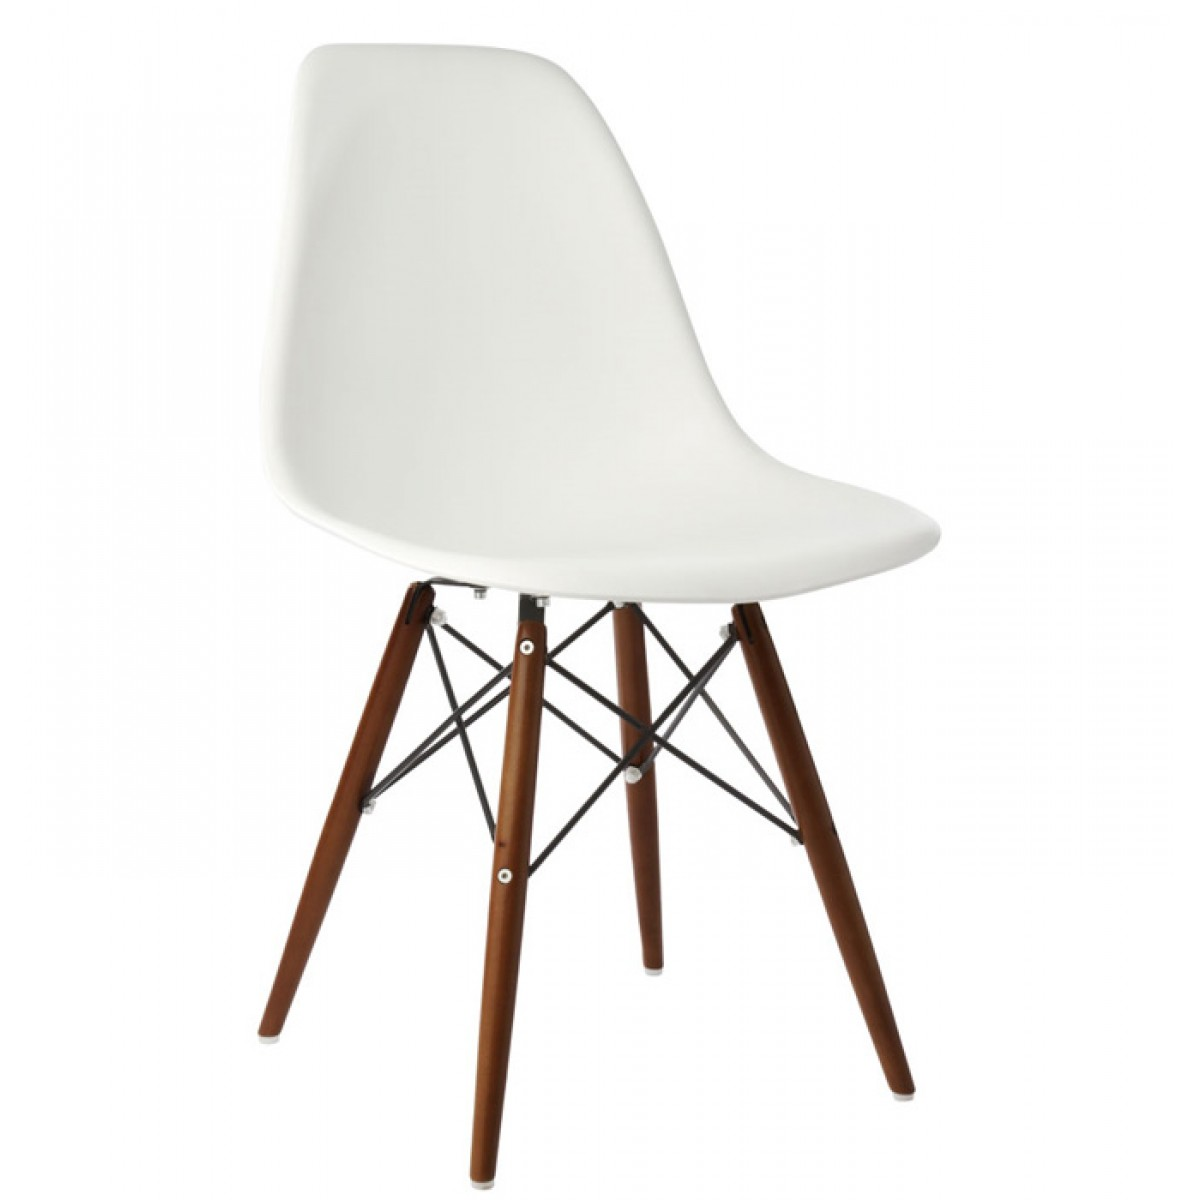 Set of 2 DSW Molded White Plastic Dining Shell Chair with Dark Walnut Wood  Eiffel LegsSet of 2 Eames Style DSW Molded White Plastic Dining Shell Chair  . Eames Daw Chair Price. Home Design Ideas